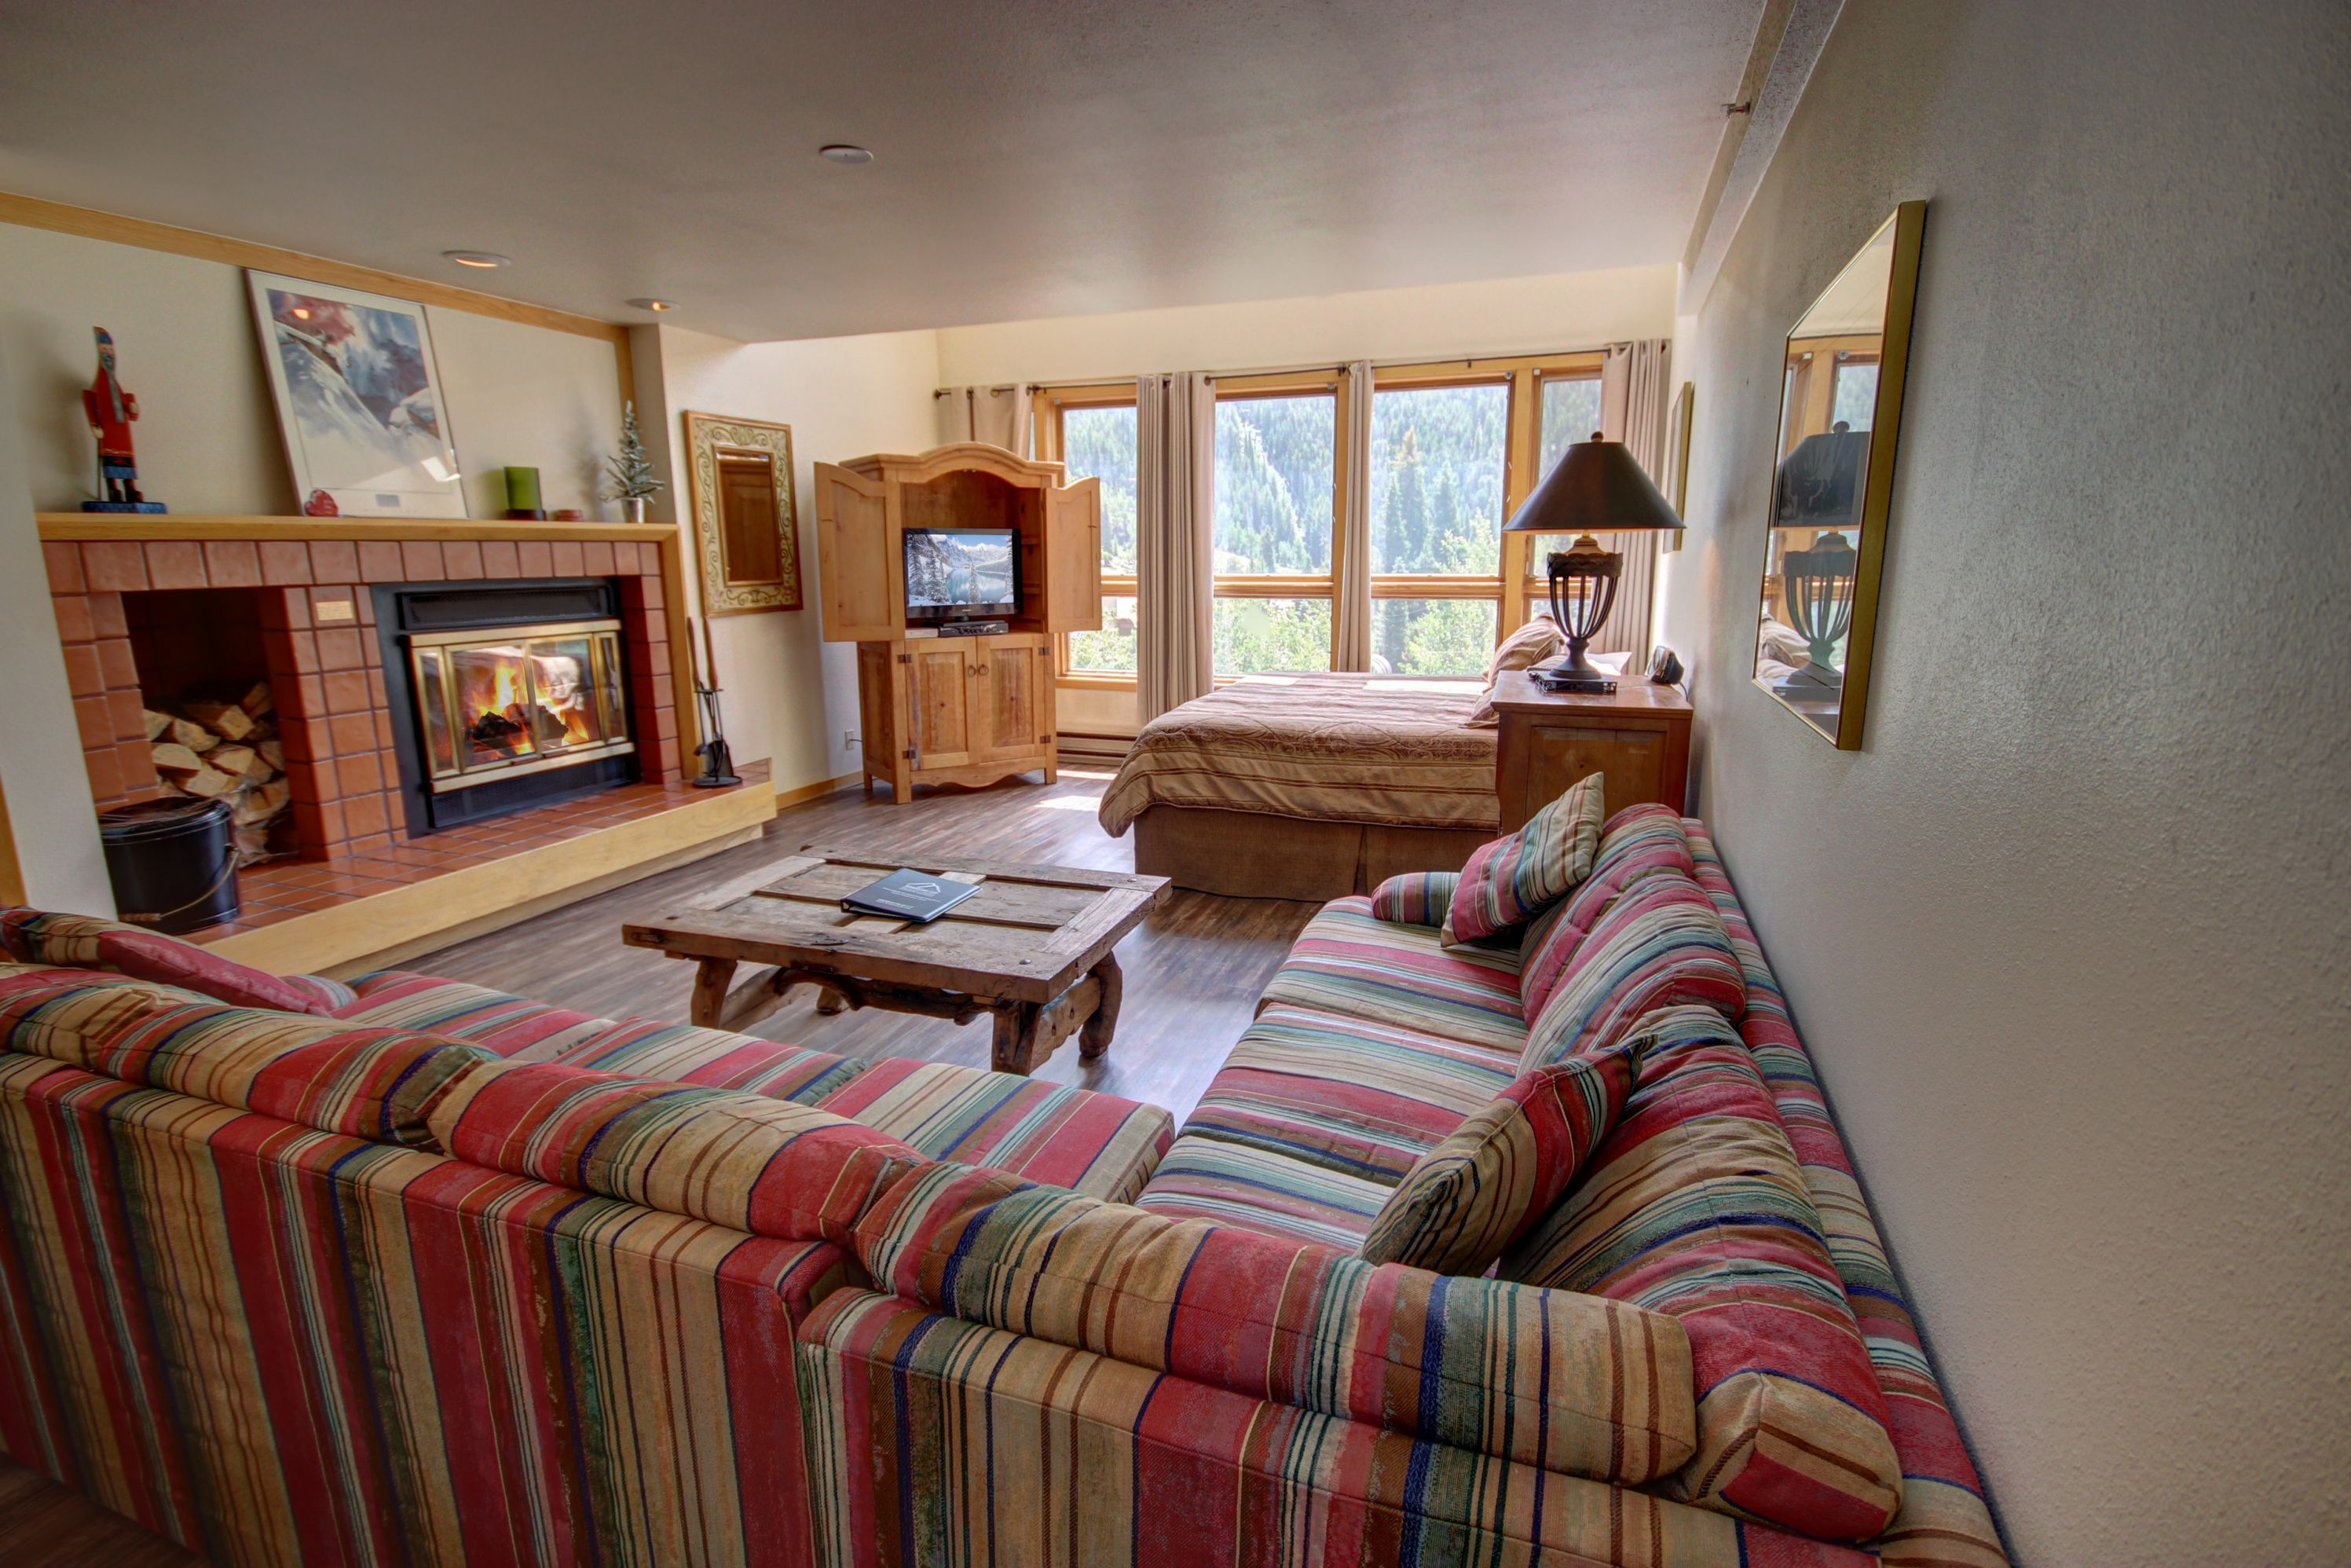 Living room with cozy fireplace and flatscreen TV